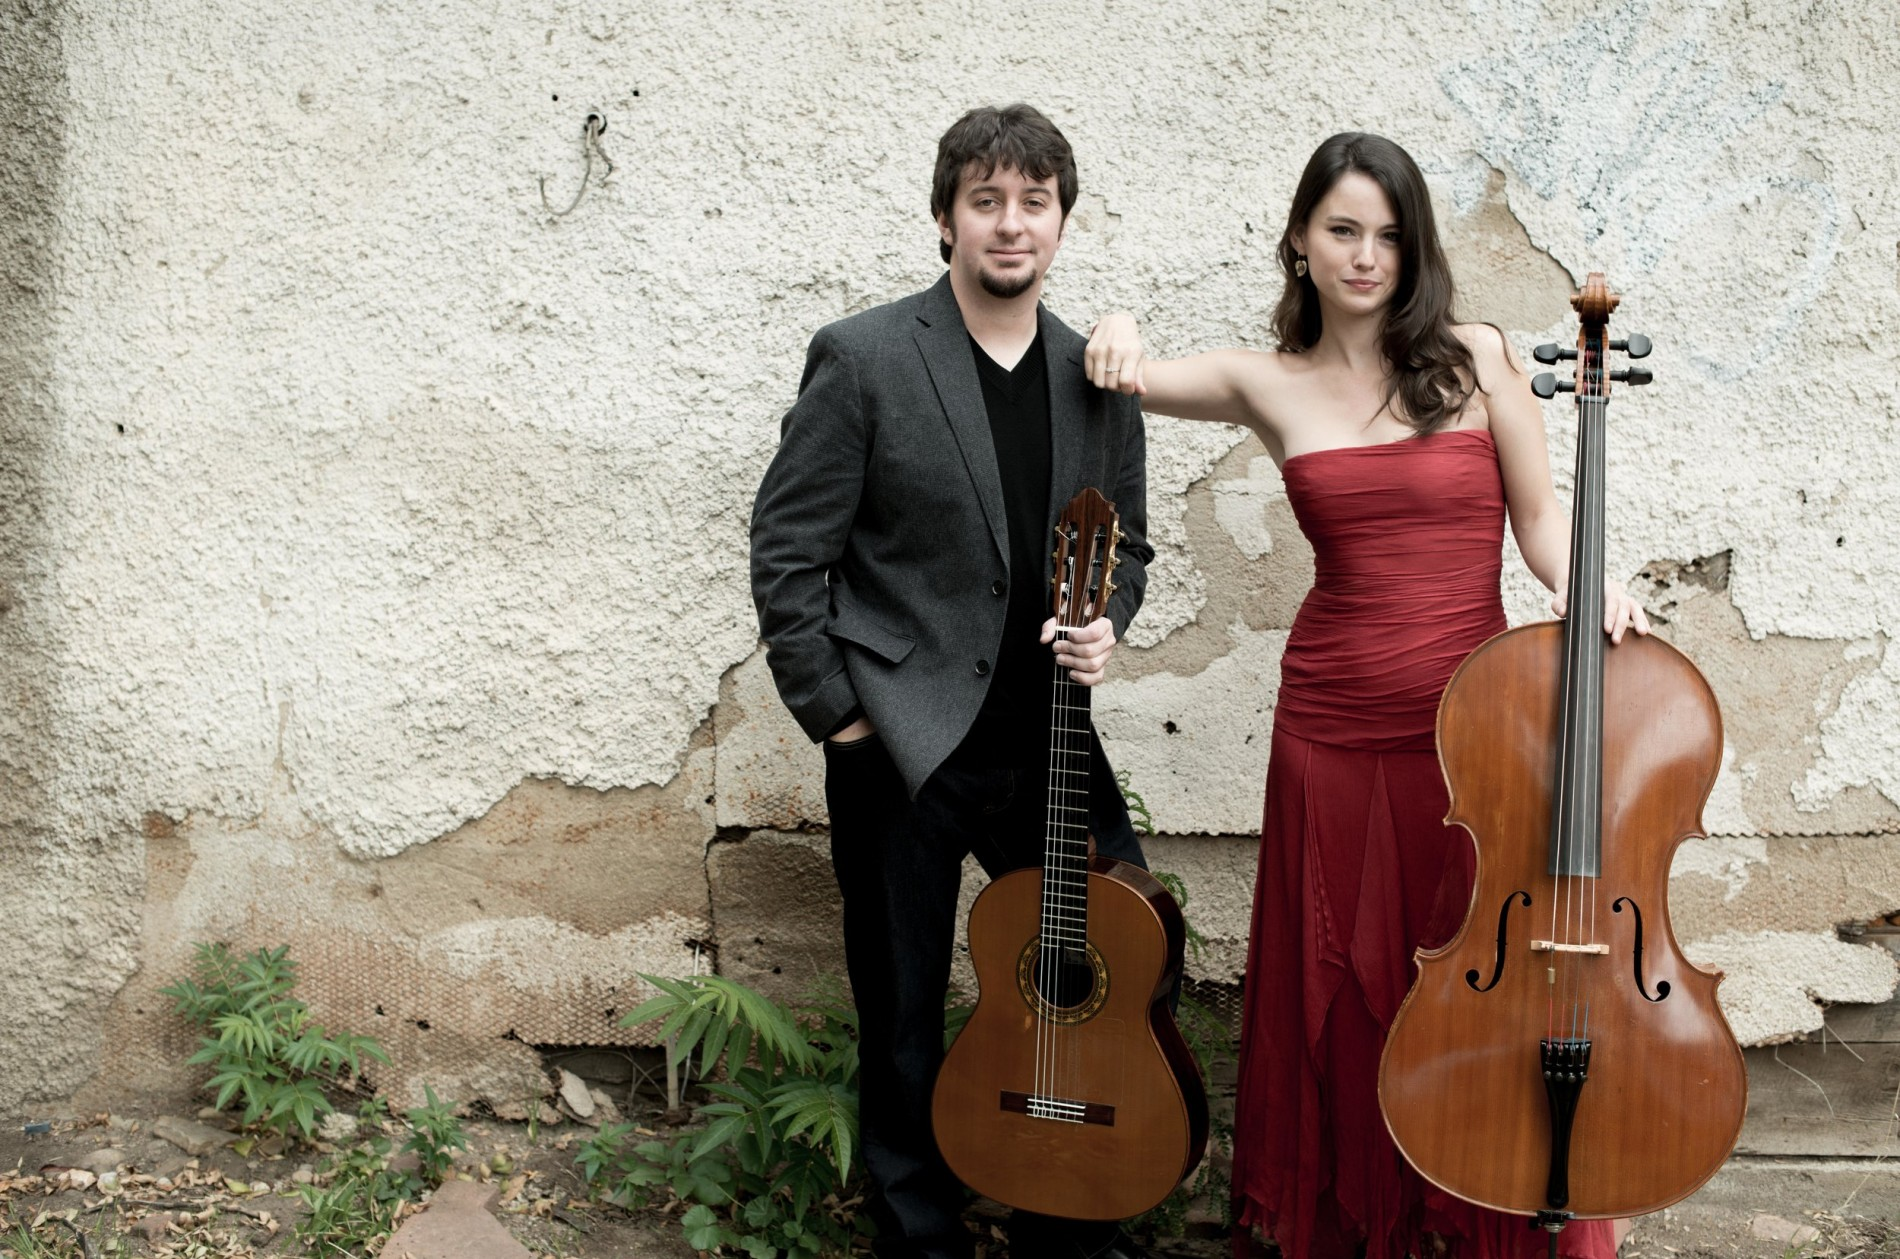 Patrick Sutton, guitar and Kimberly Patterson, cello